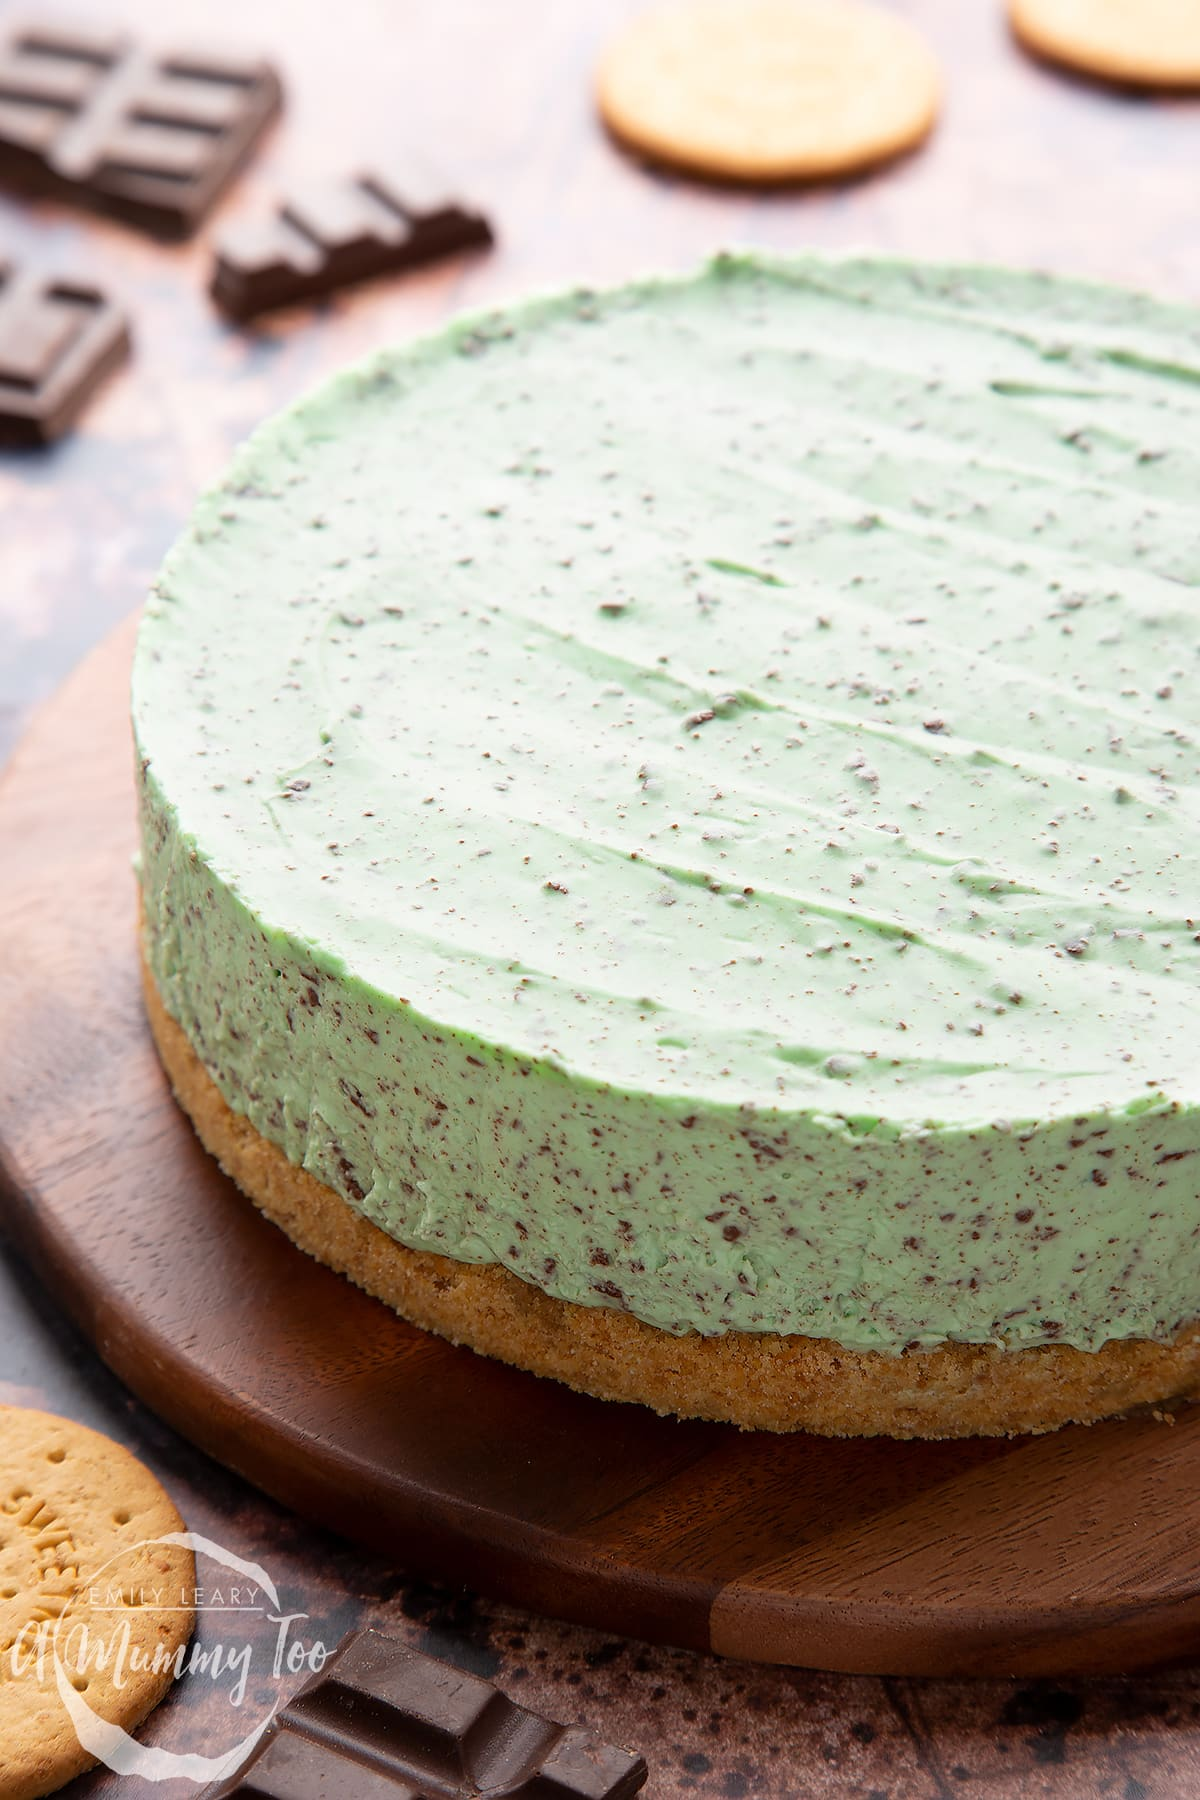 No bake mint cheesecake with a biscuit base on a wooden board.